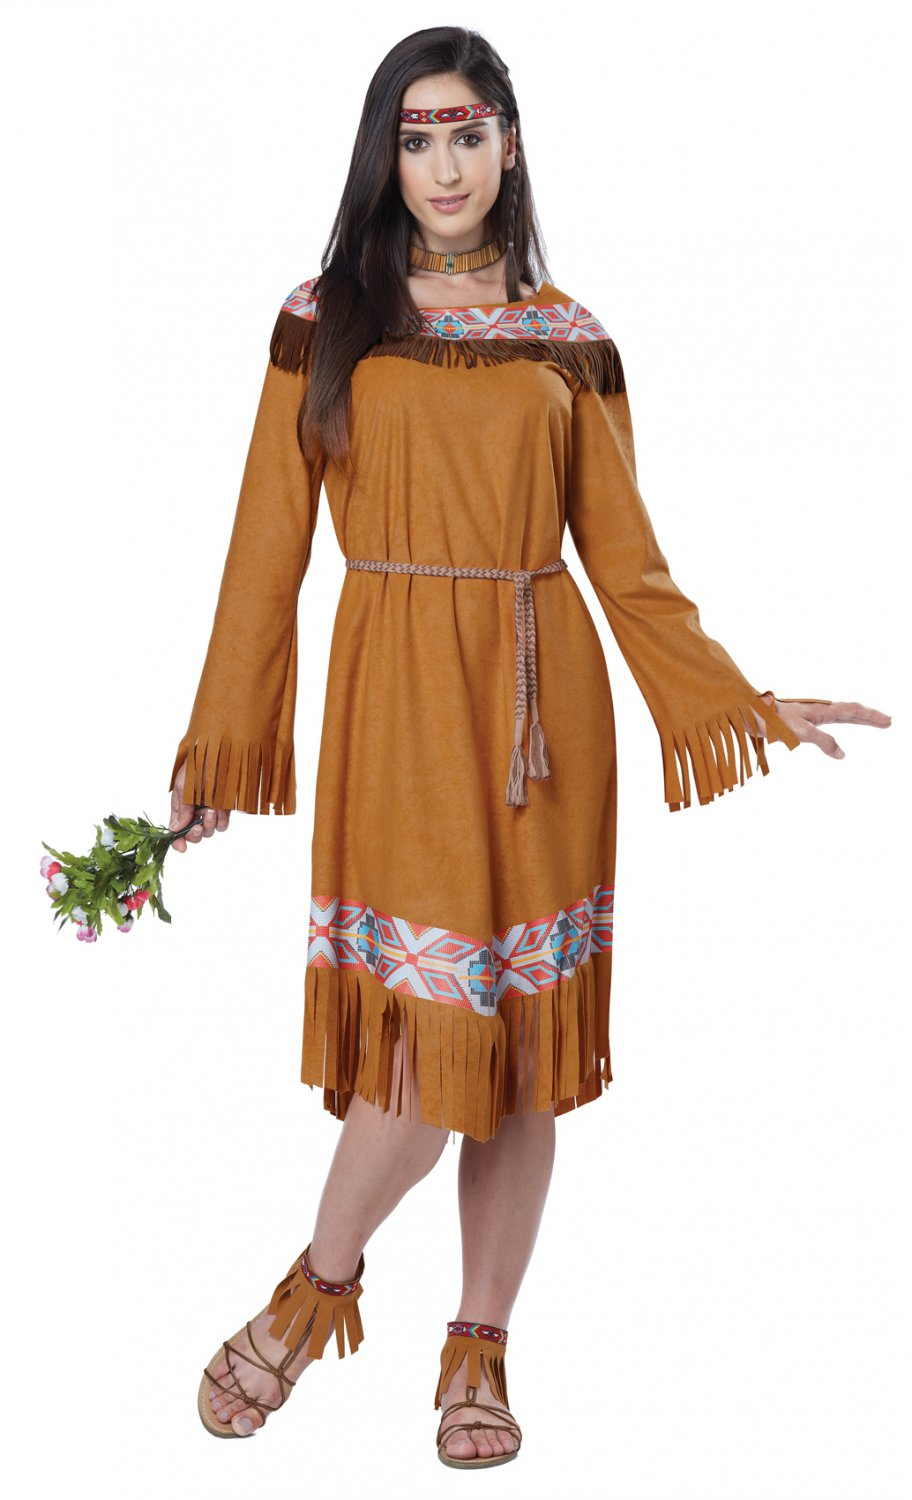 Thanksgiving Pocahontas Classic Indian Maiden Adult Costume Size: X-Small #01594